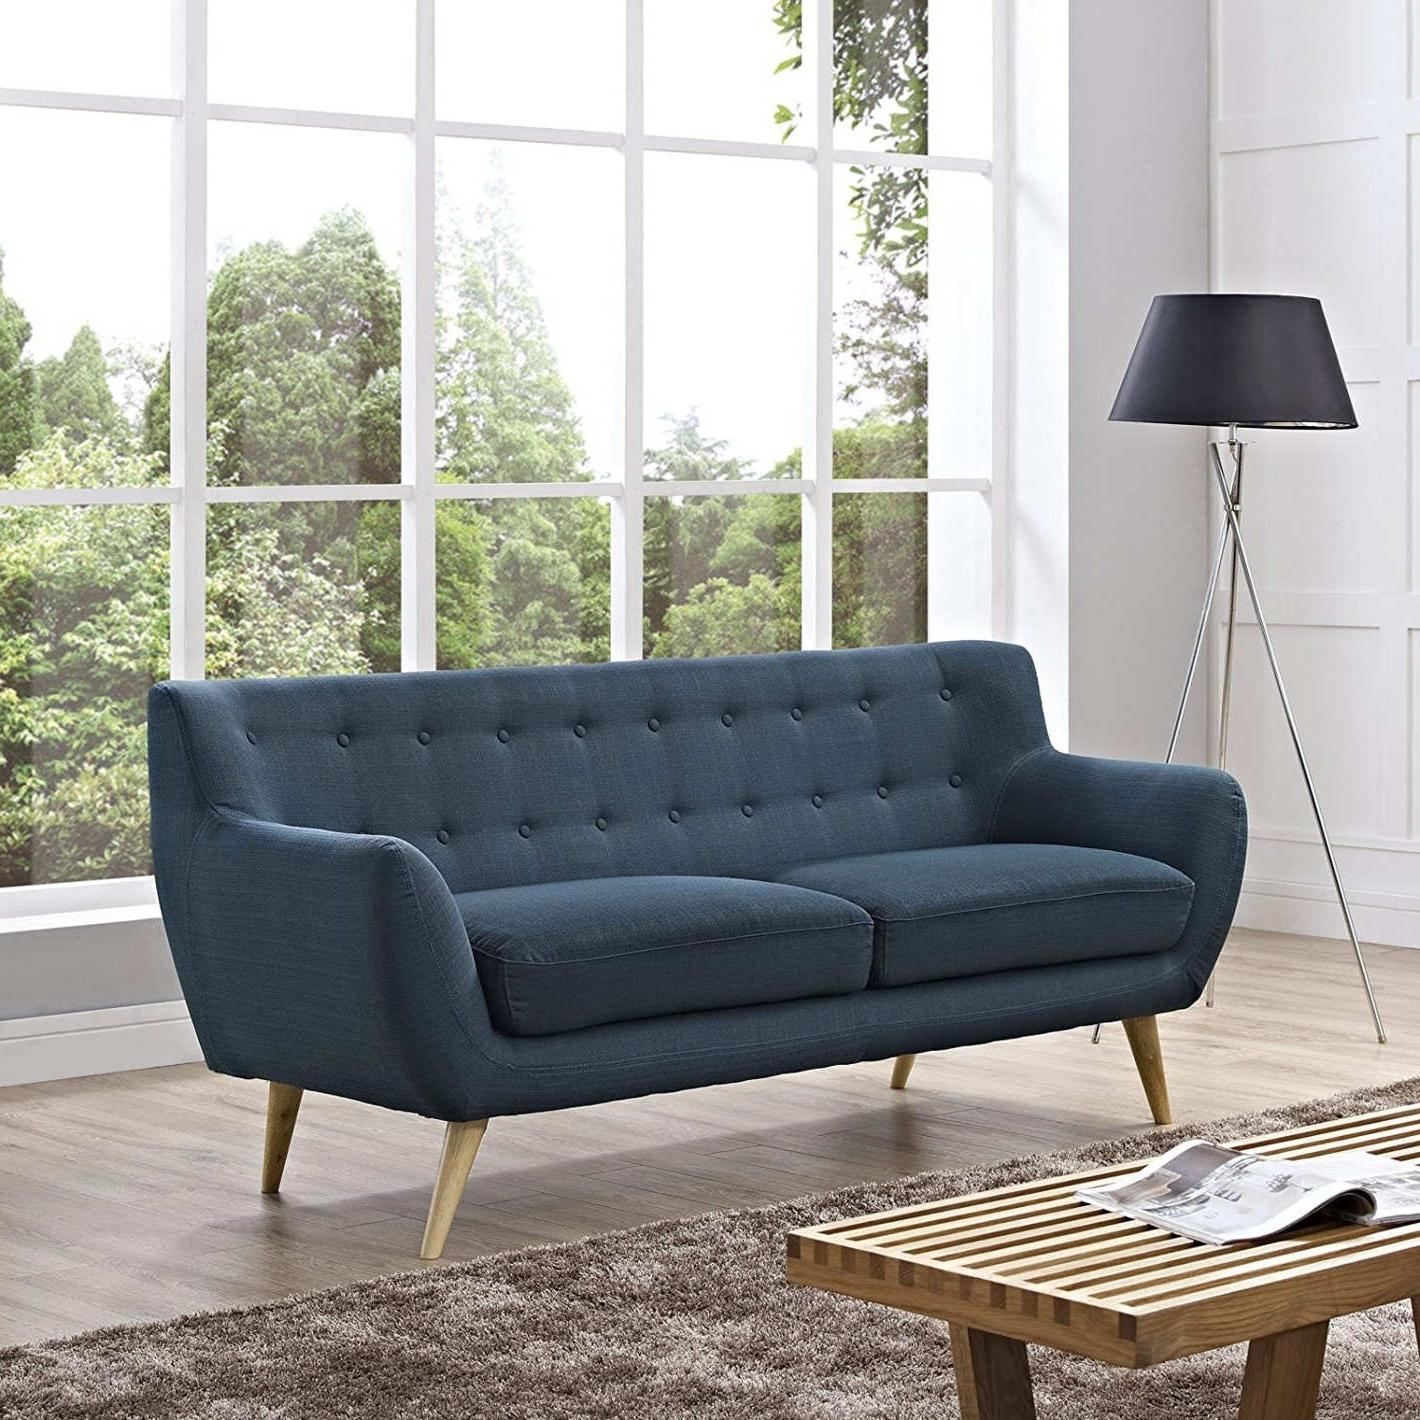 The Best Sofas Under $500 (Plus A Few Under $1000) With Current Chintz Sofas (View 16 of 20)